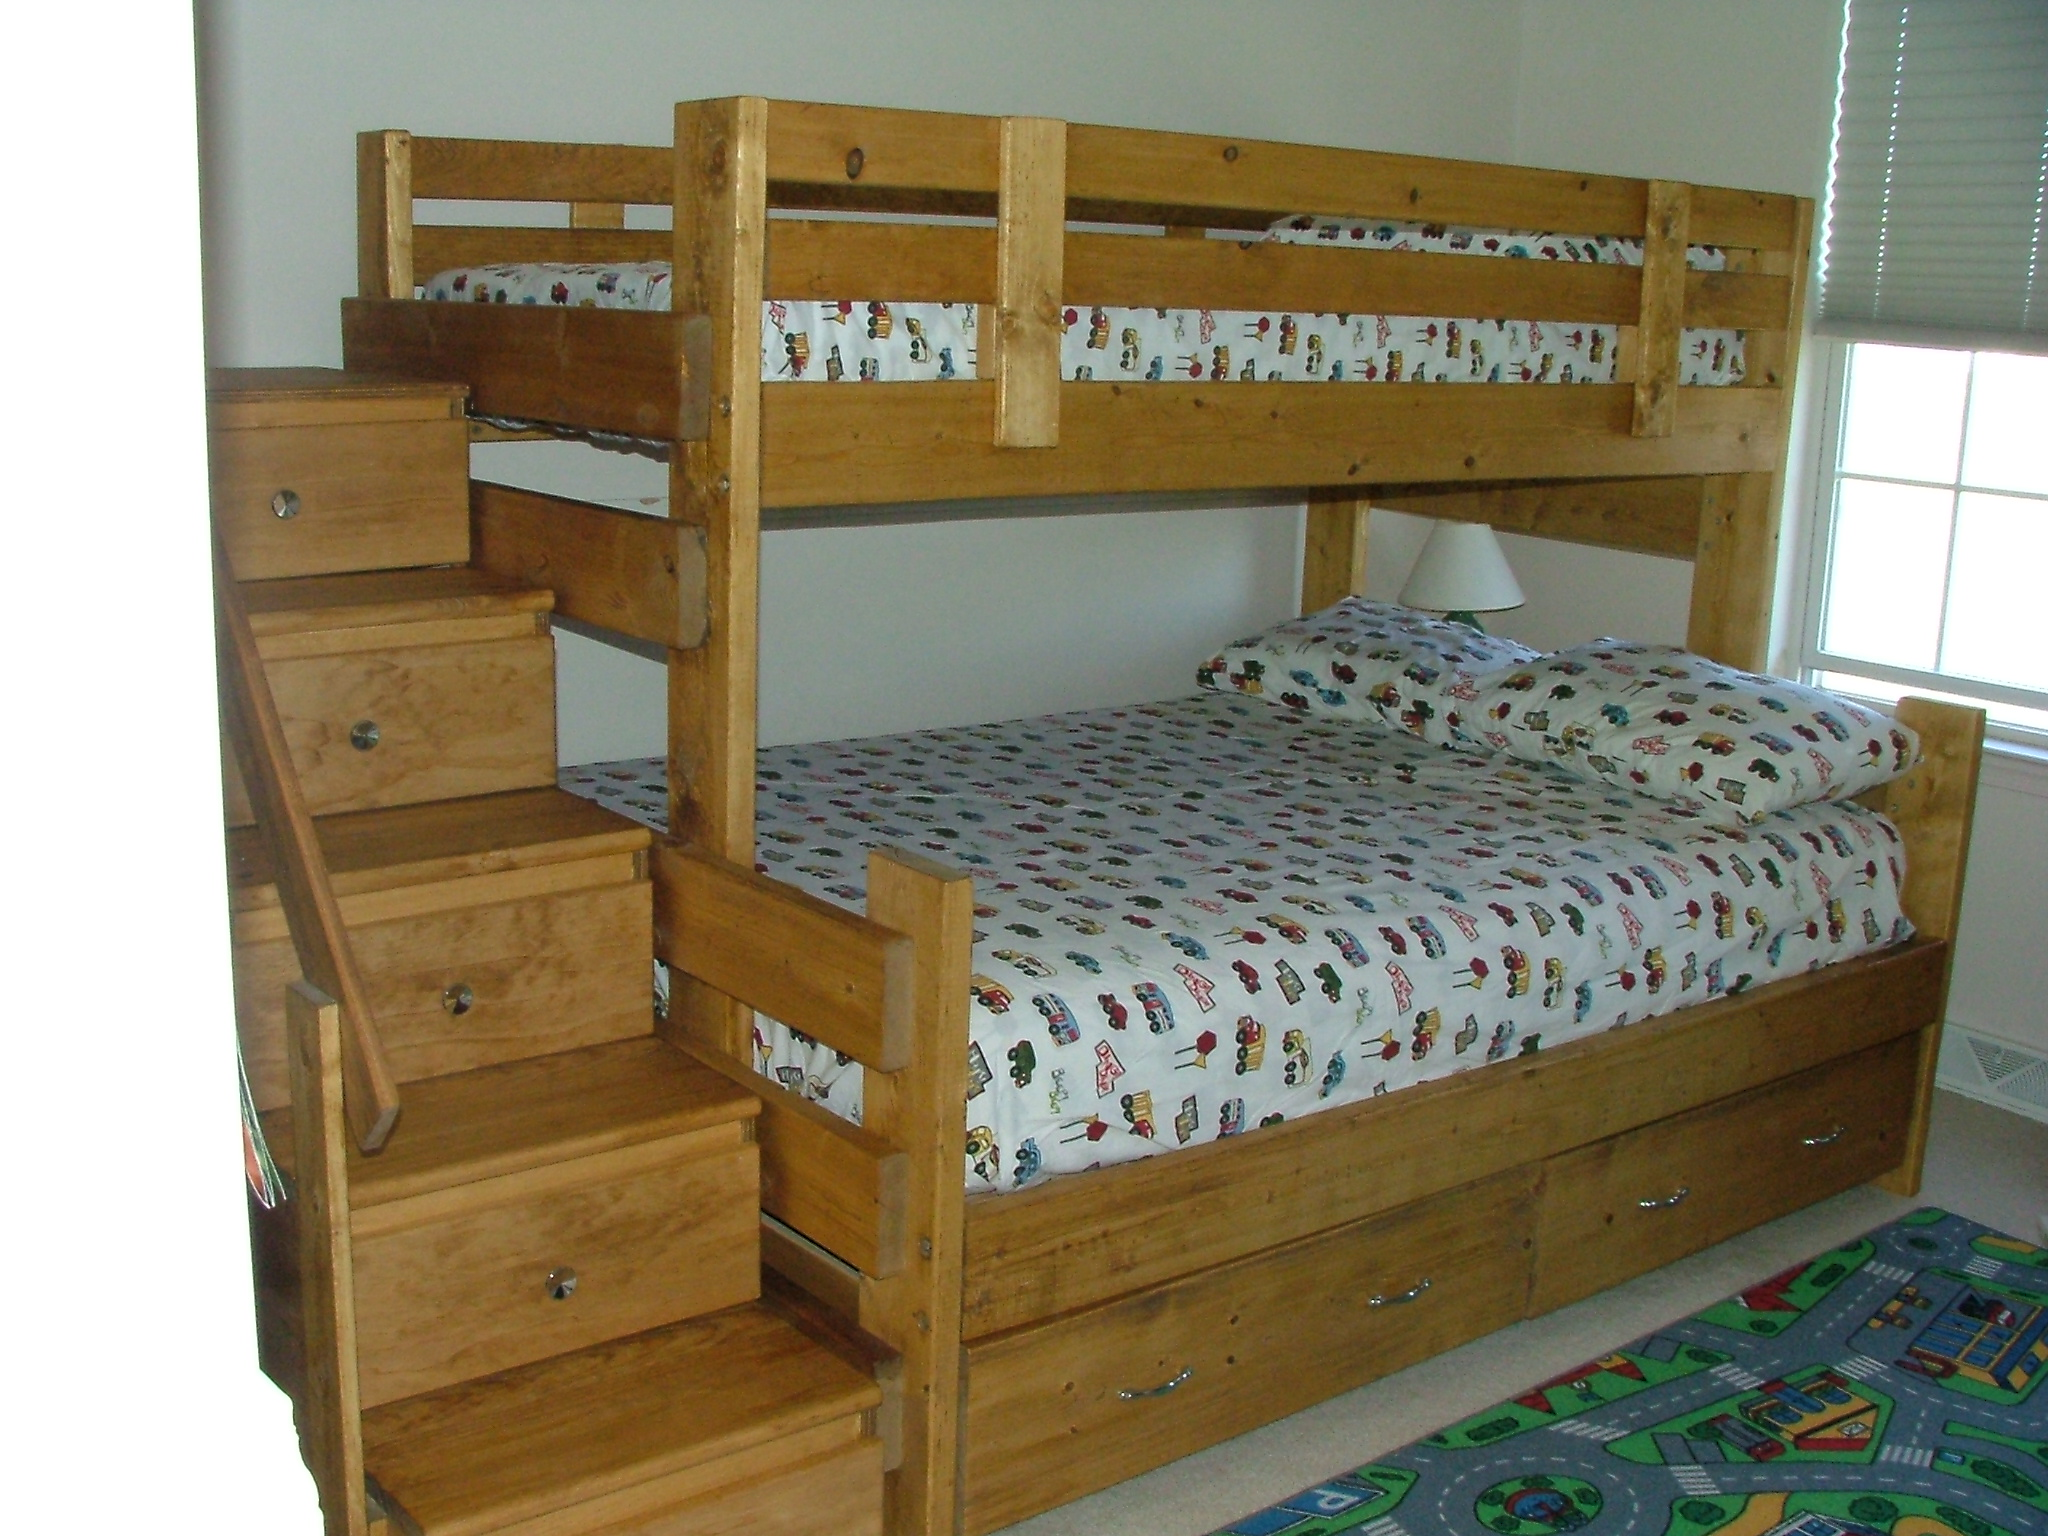 Complete Ilrated Guide To Woodworking Collection Inroom Designs Bunks Bed